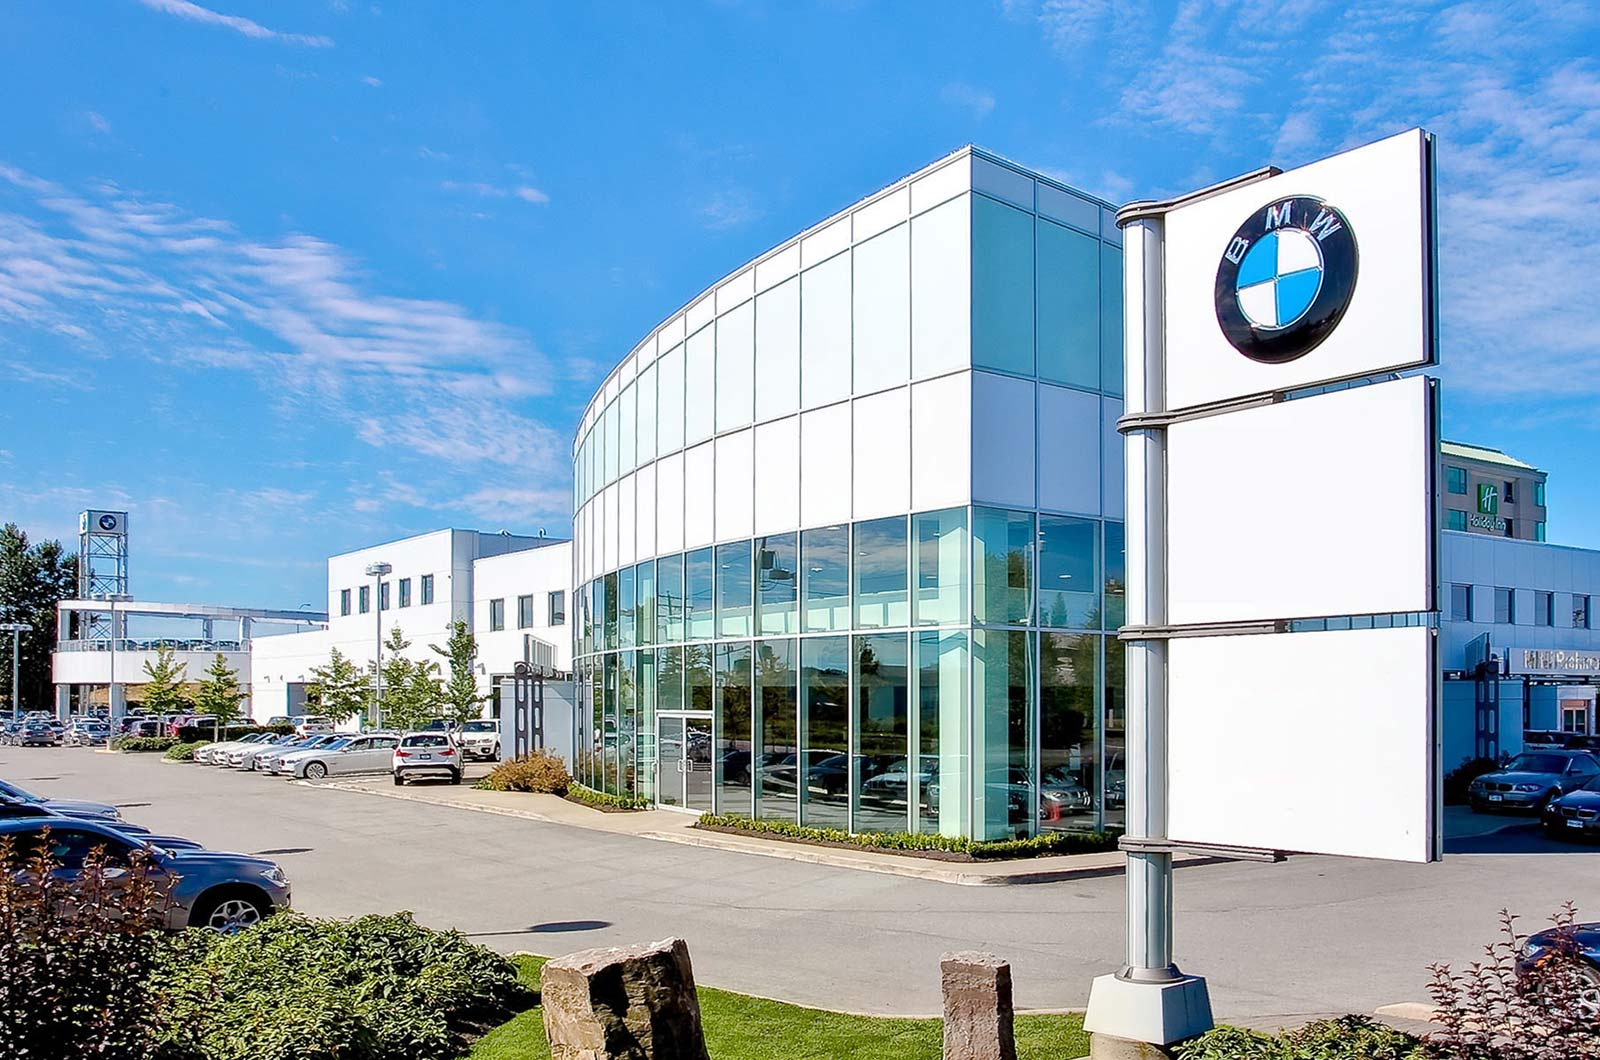 Auto-West-BMW-Auto-Dealership-BMW-Auto-Dealership-Exterior-Architectural-Photography-Virtual-Tour-Aerial-Photography-Services-Hero